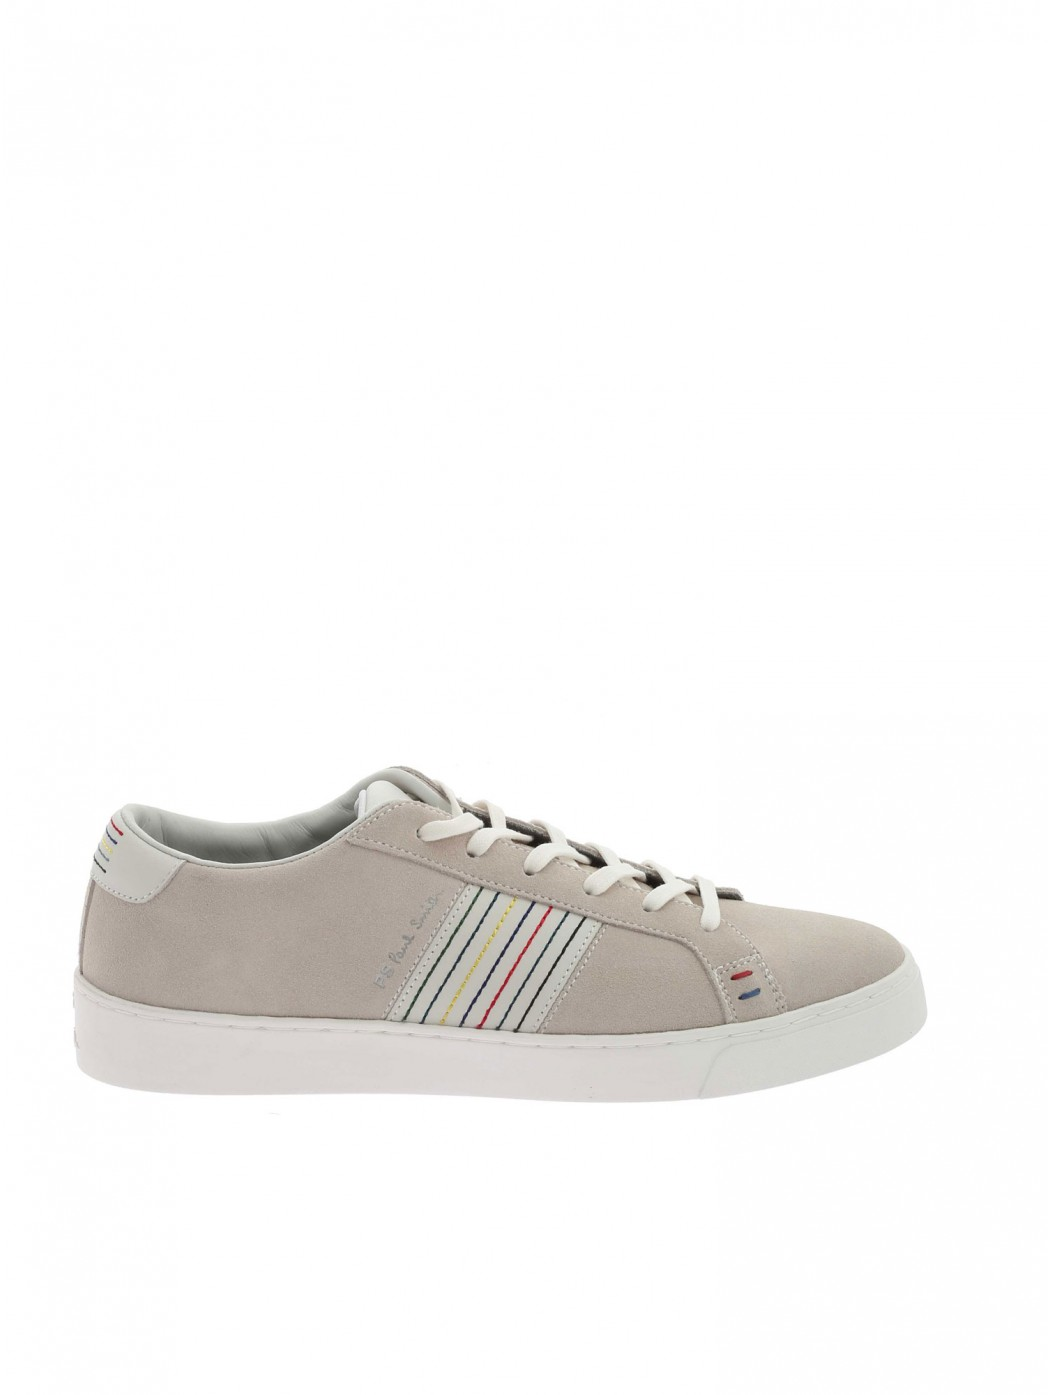 MENS SHOE LOWE GREY PAUL SMITH M2SLOE06FSUE 70